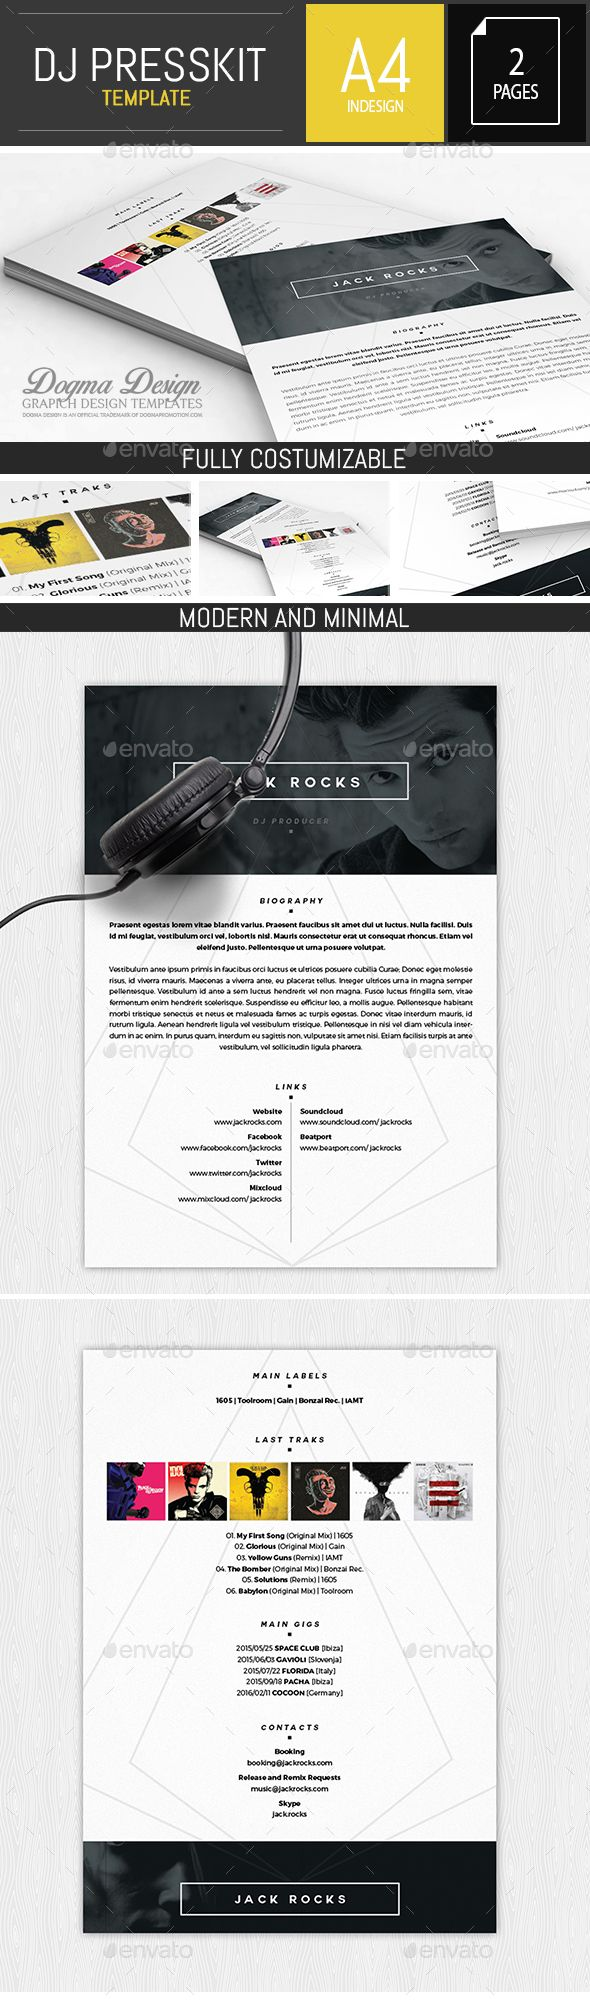 Musician  Dj Press Kit  Resume Indesign Template